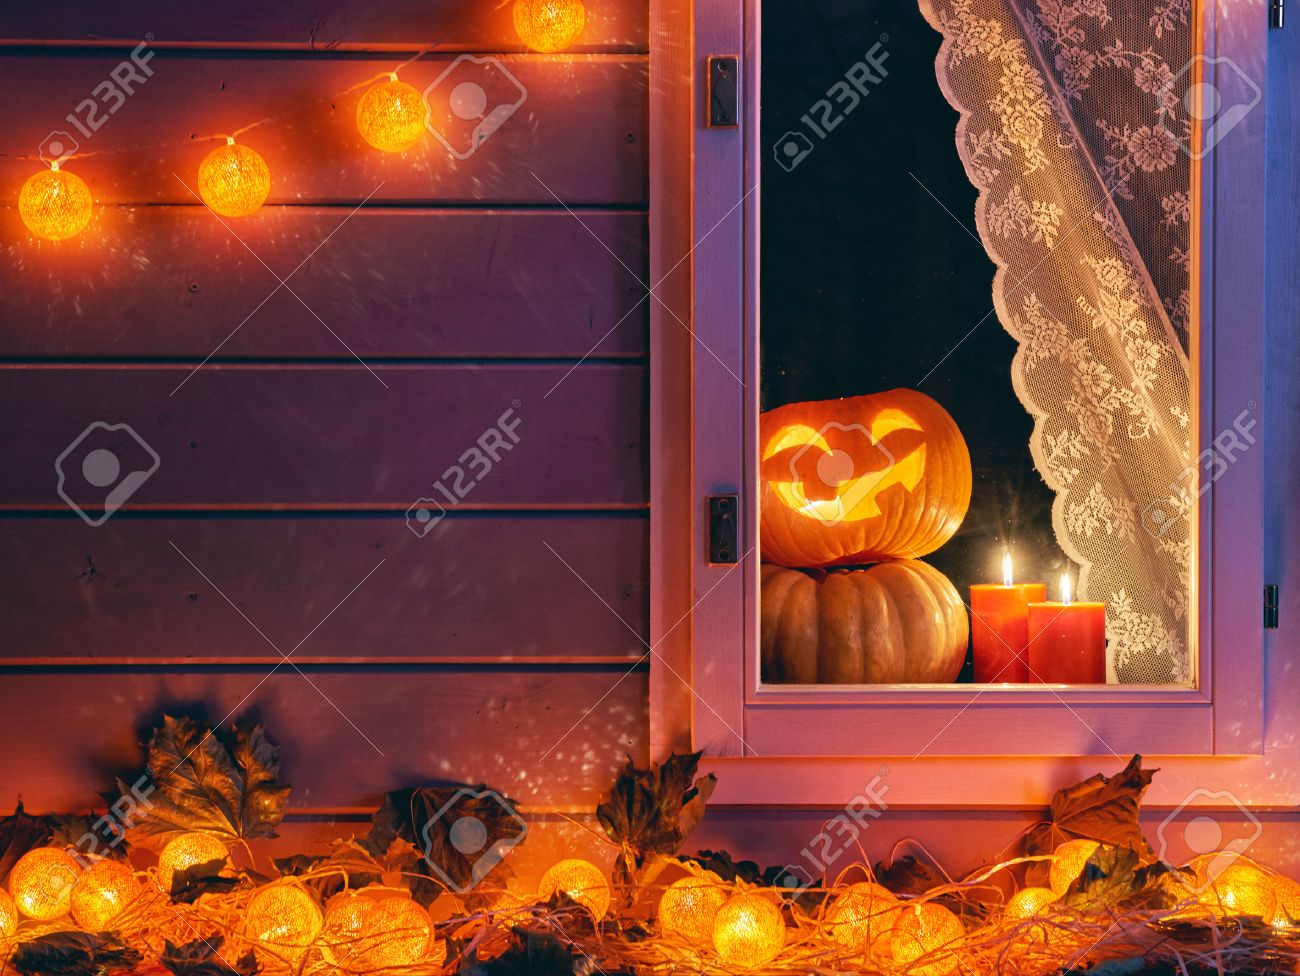 Happy Halloween The Window Of A House Decorated For The Holiday Stock Photo Picture And Royalty Free Image Image 63010265